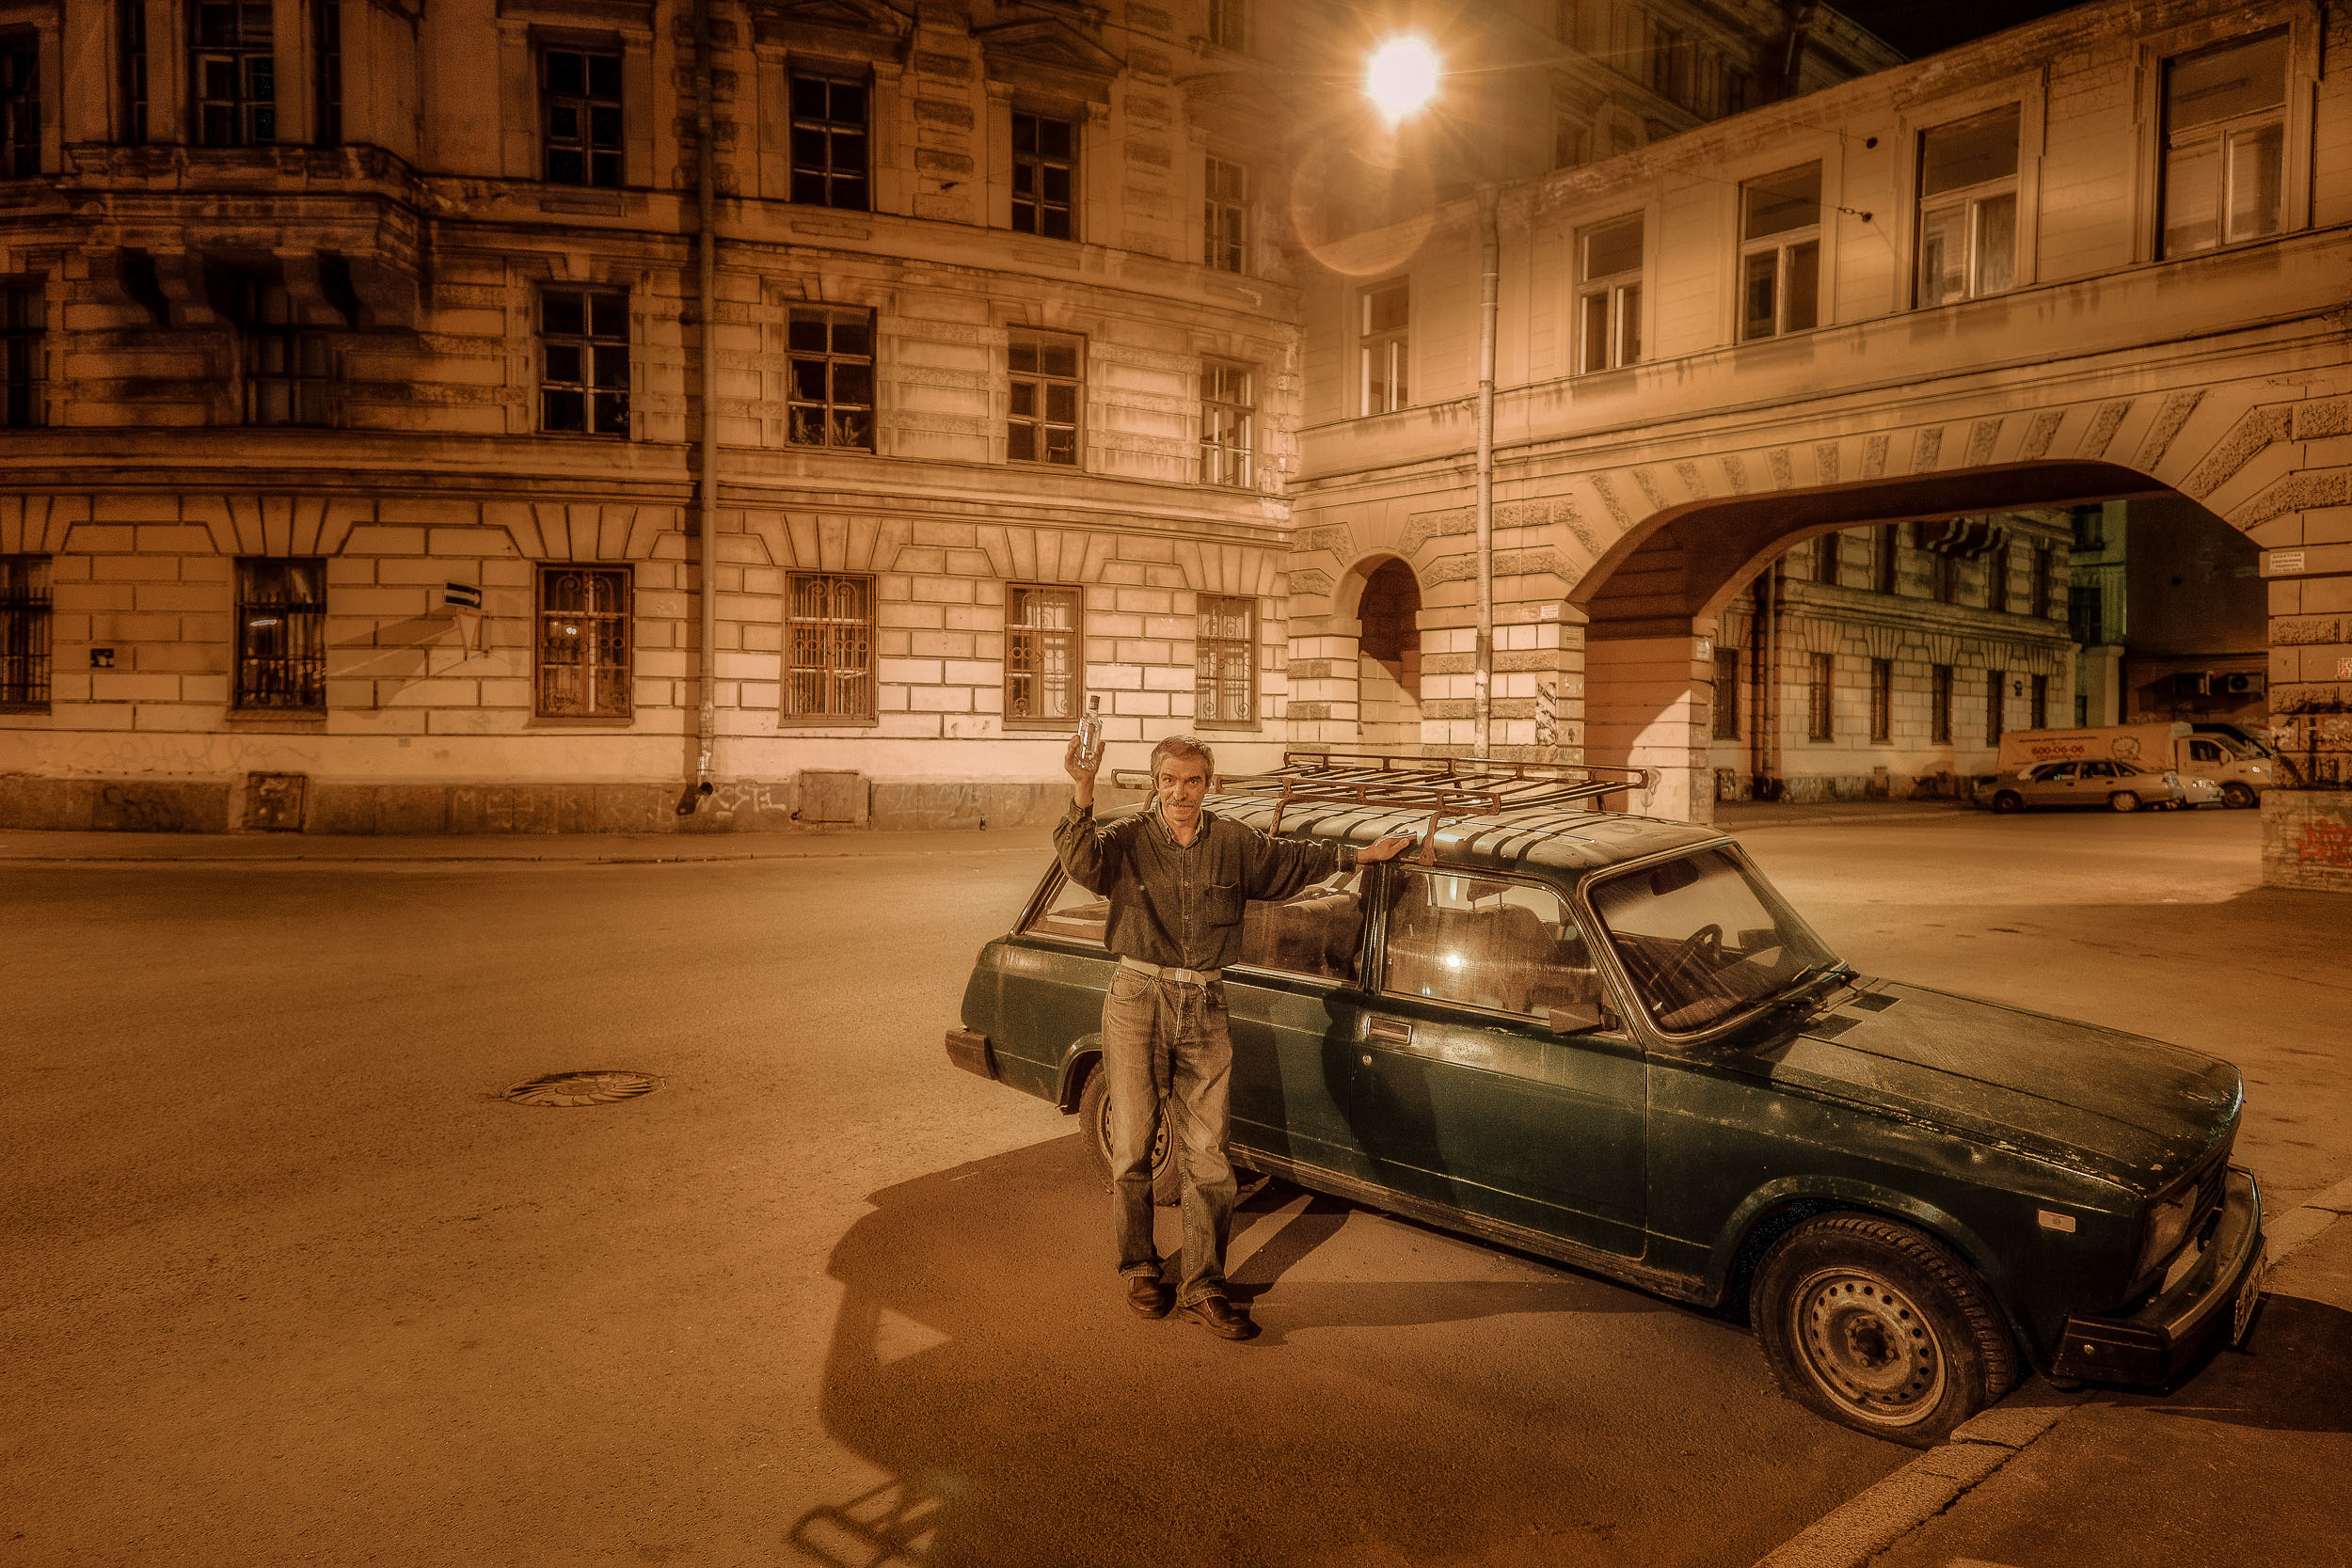 A gentle and friendly man I met near the end of a night photography adventure I undertook in St. Petersburg, Russia.